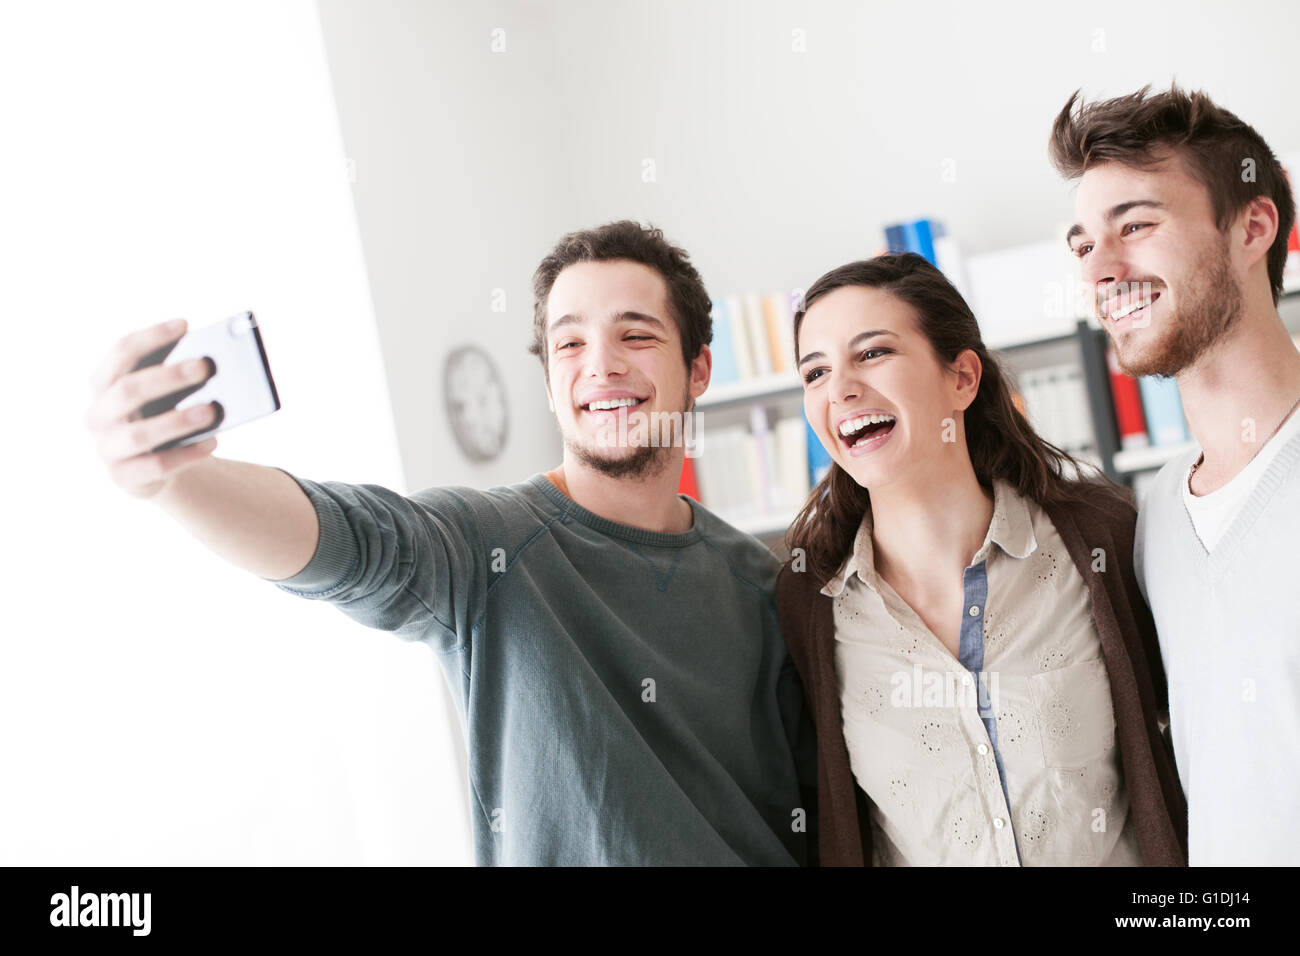 Smiling happy teenagers taking selfies with a mobile phone, sharing, technology and friendship concept - Stock Image